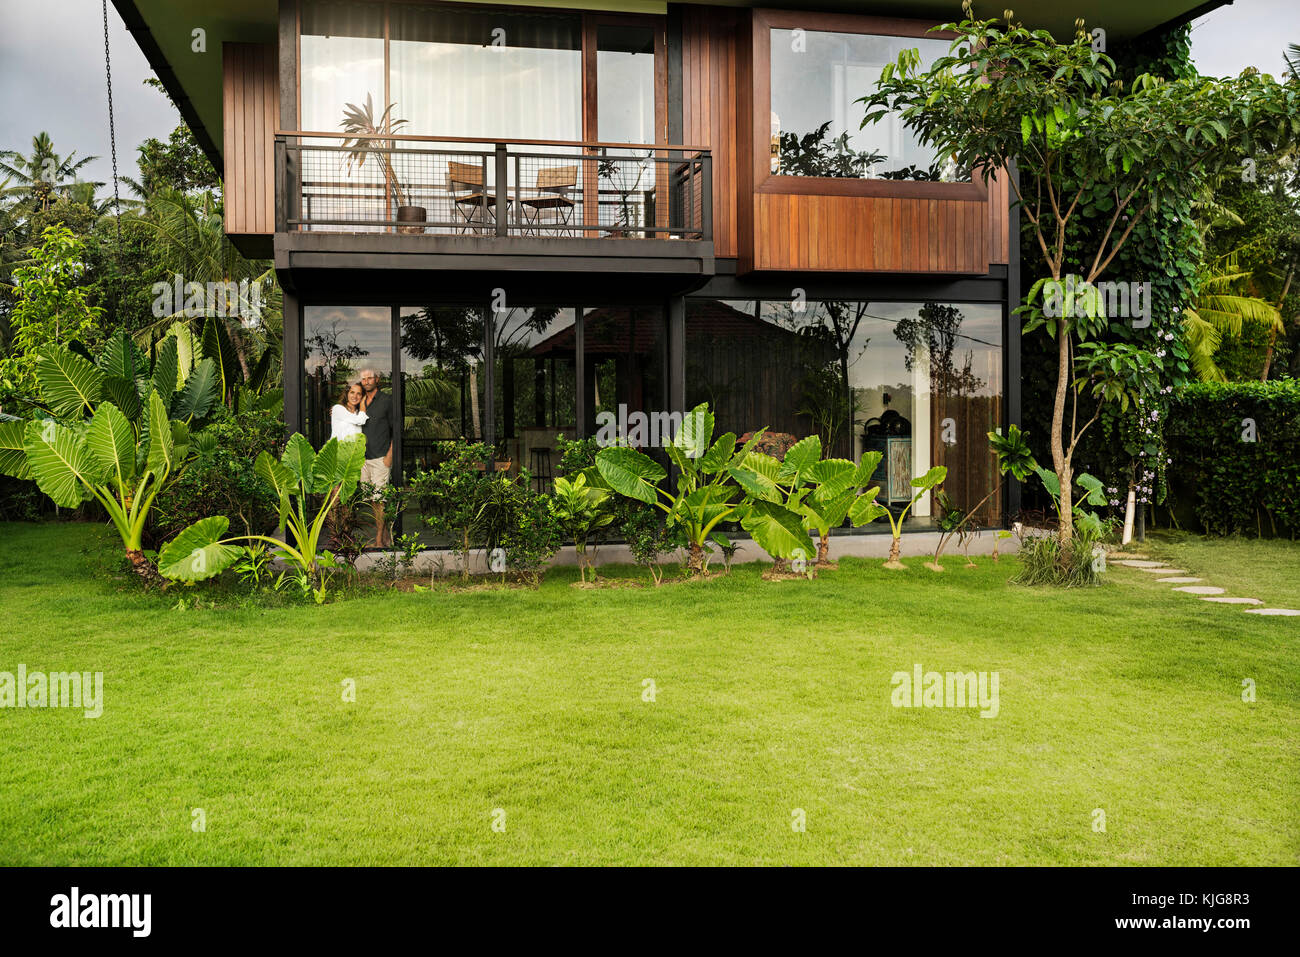 Garden View Of Couple Standing In Modern Design House Surrounded